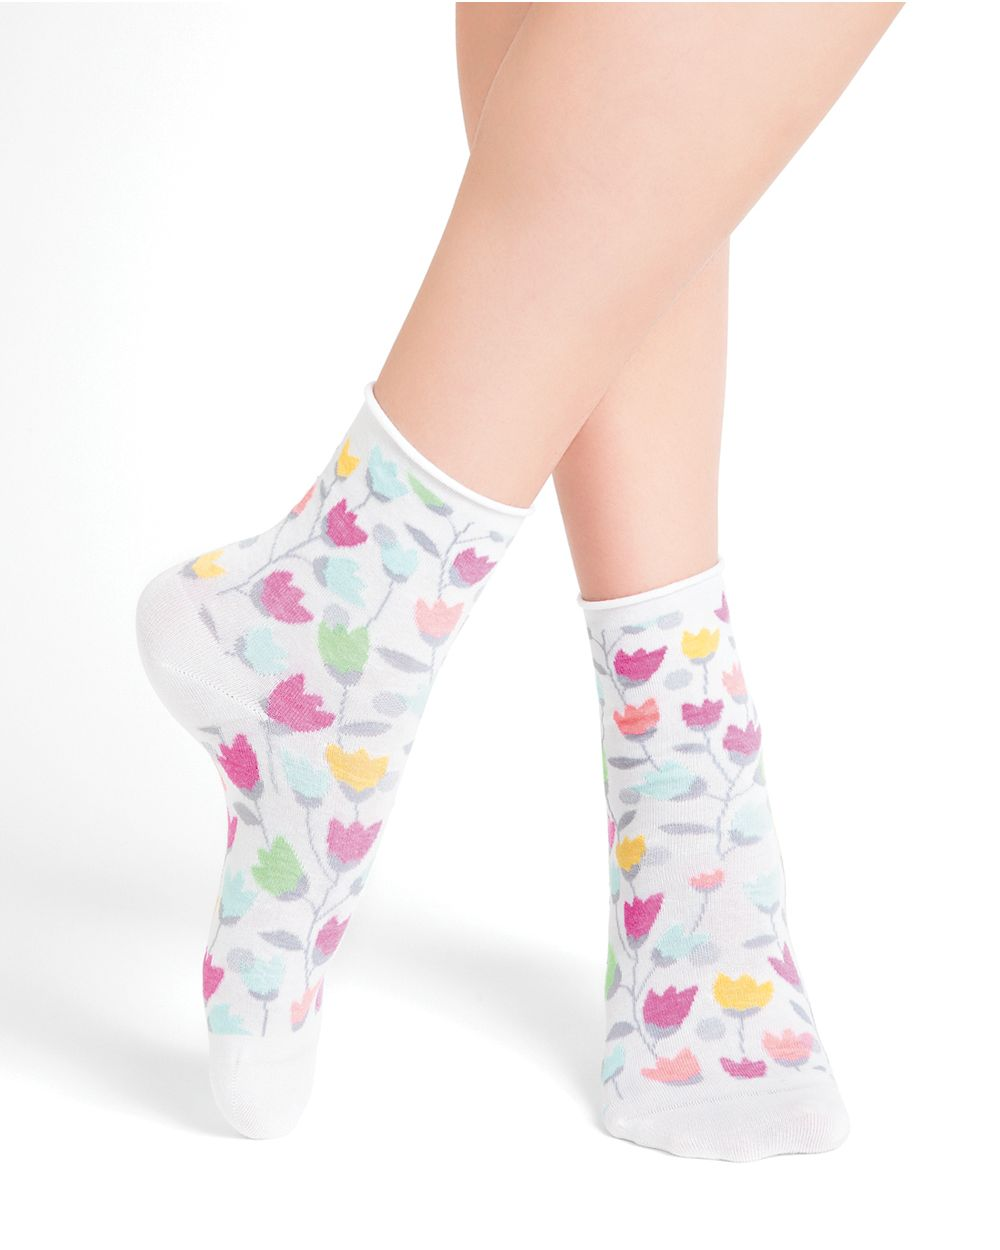 Tulip pattern cotton mid-calf socks